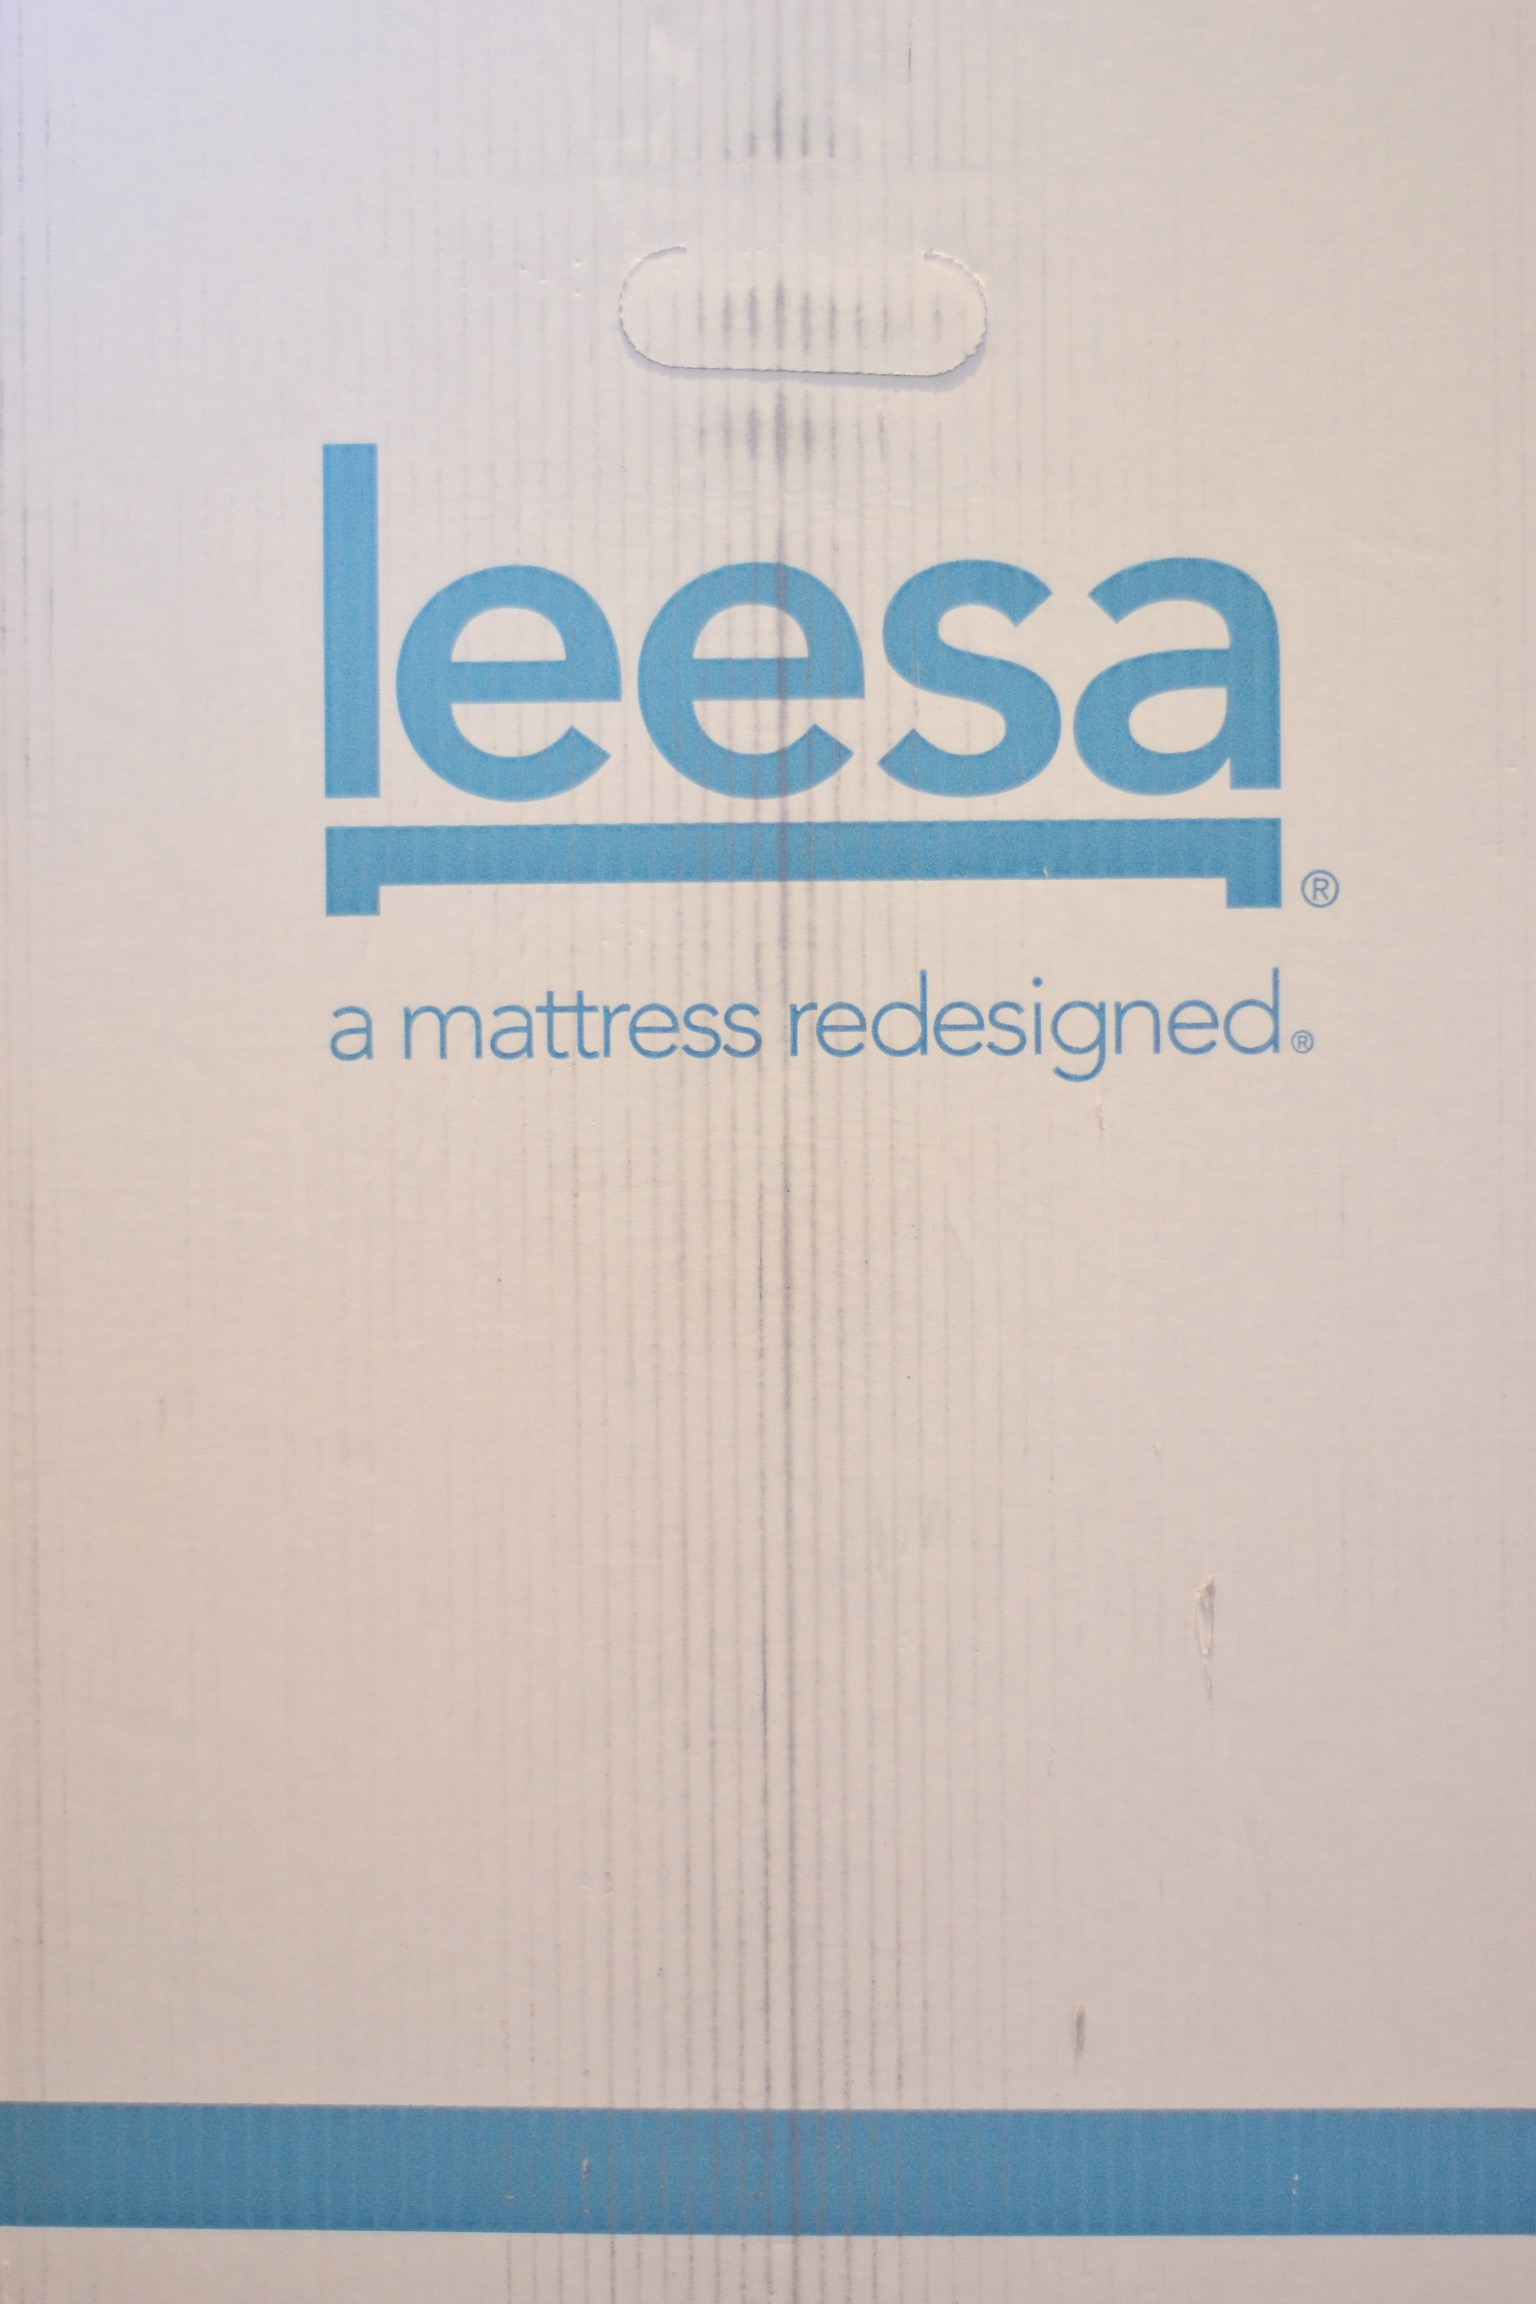 leesa-mattress-packaging